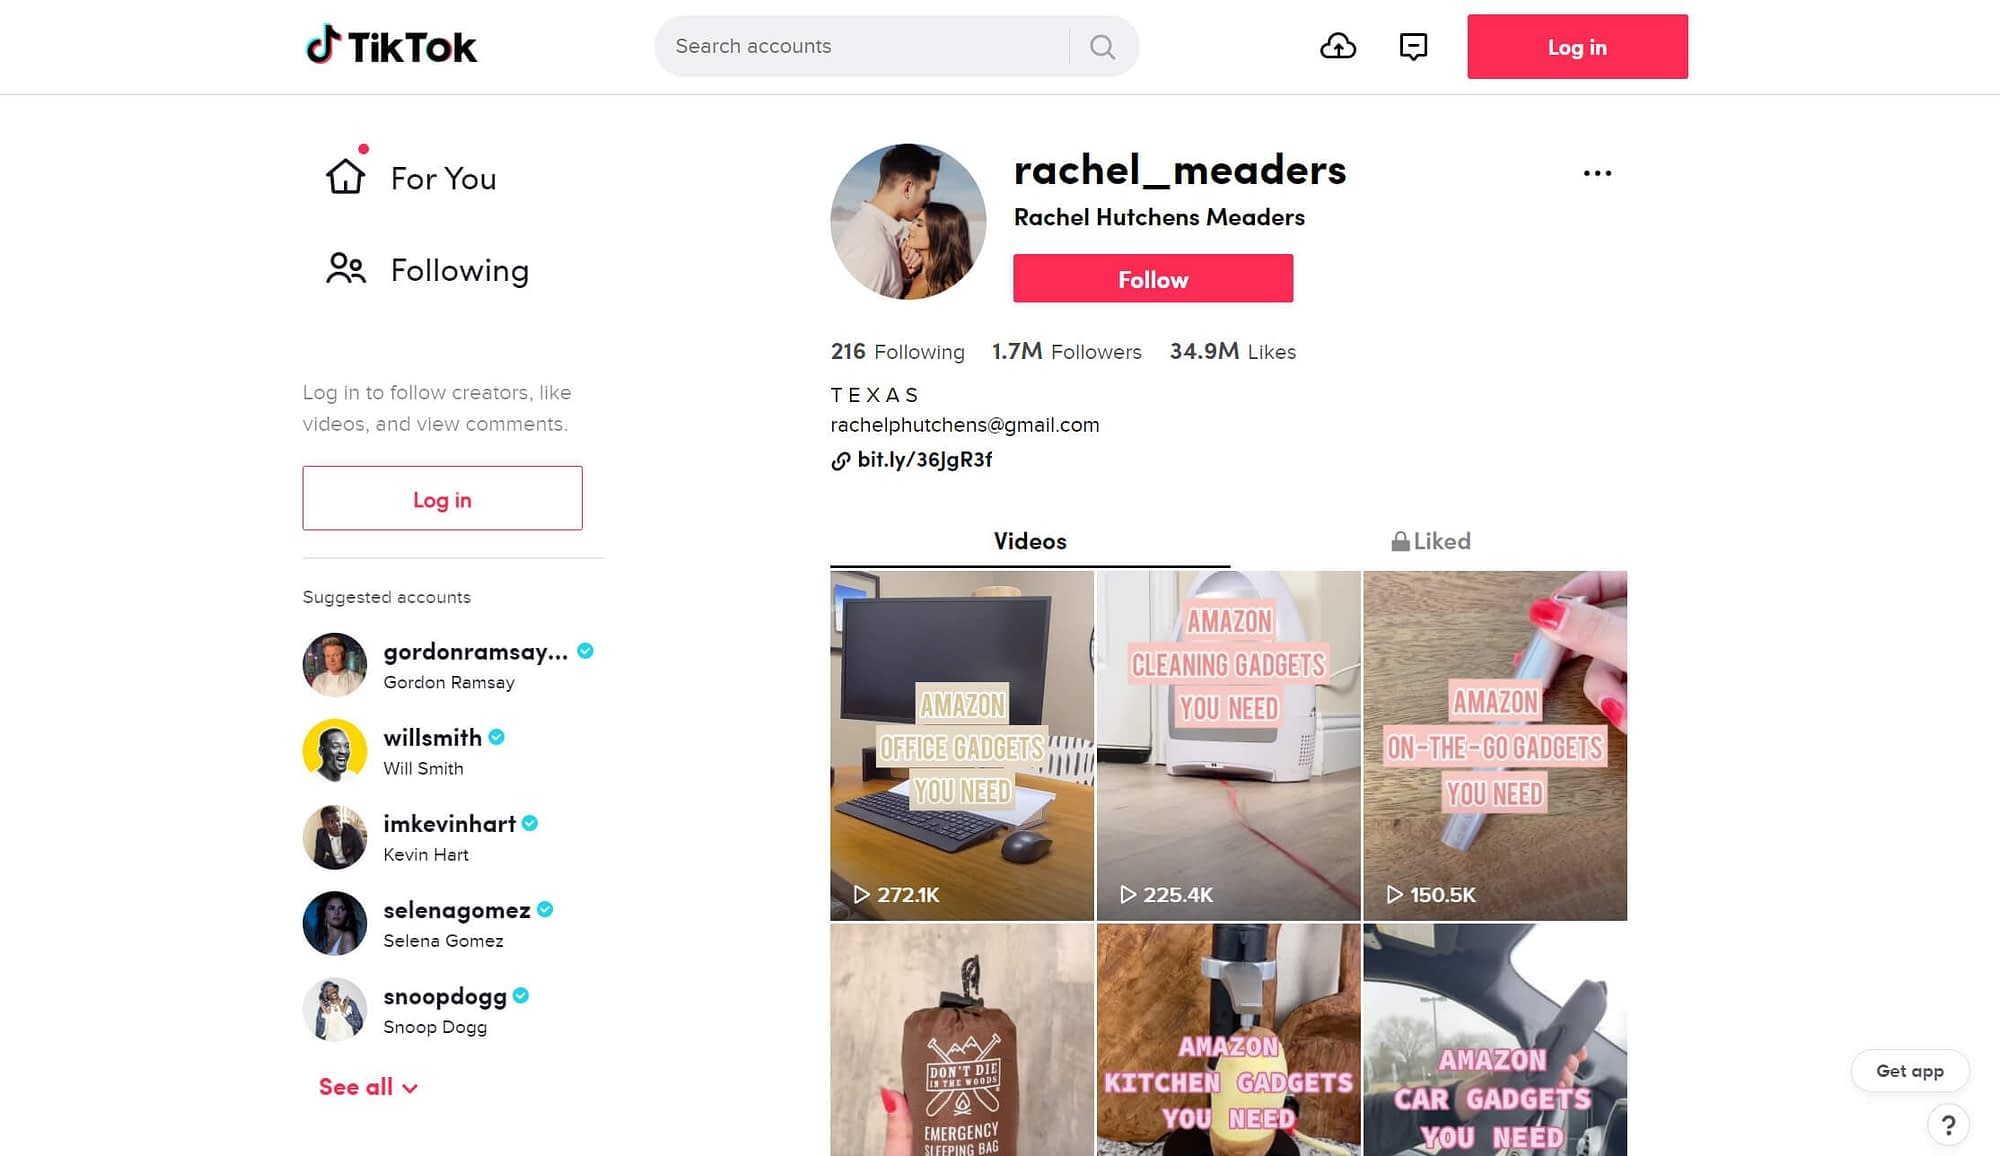 An example of a TikTok profile that focuses on affiliate marketing.